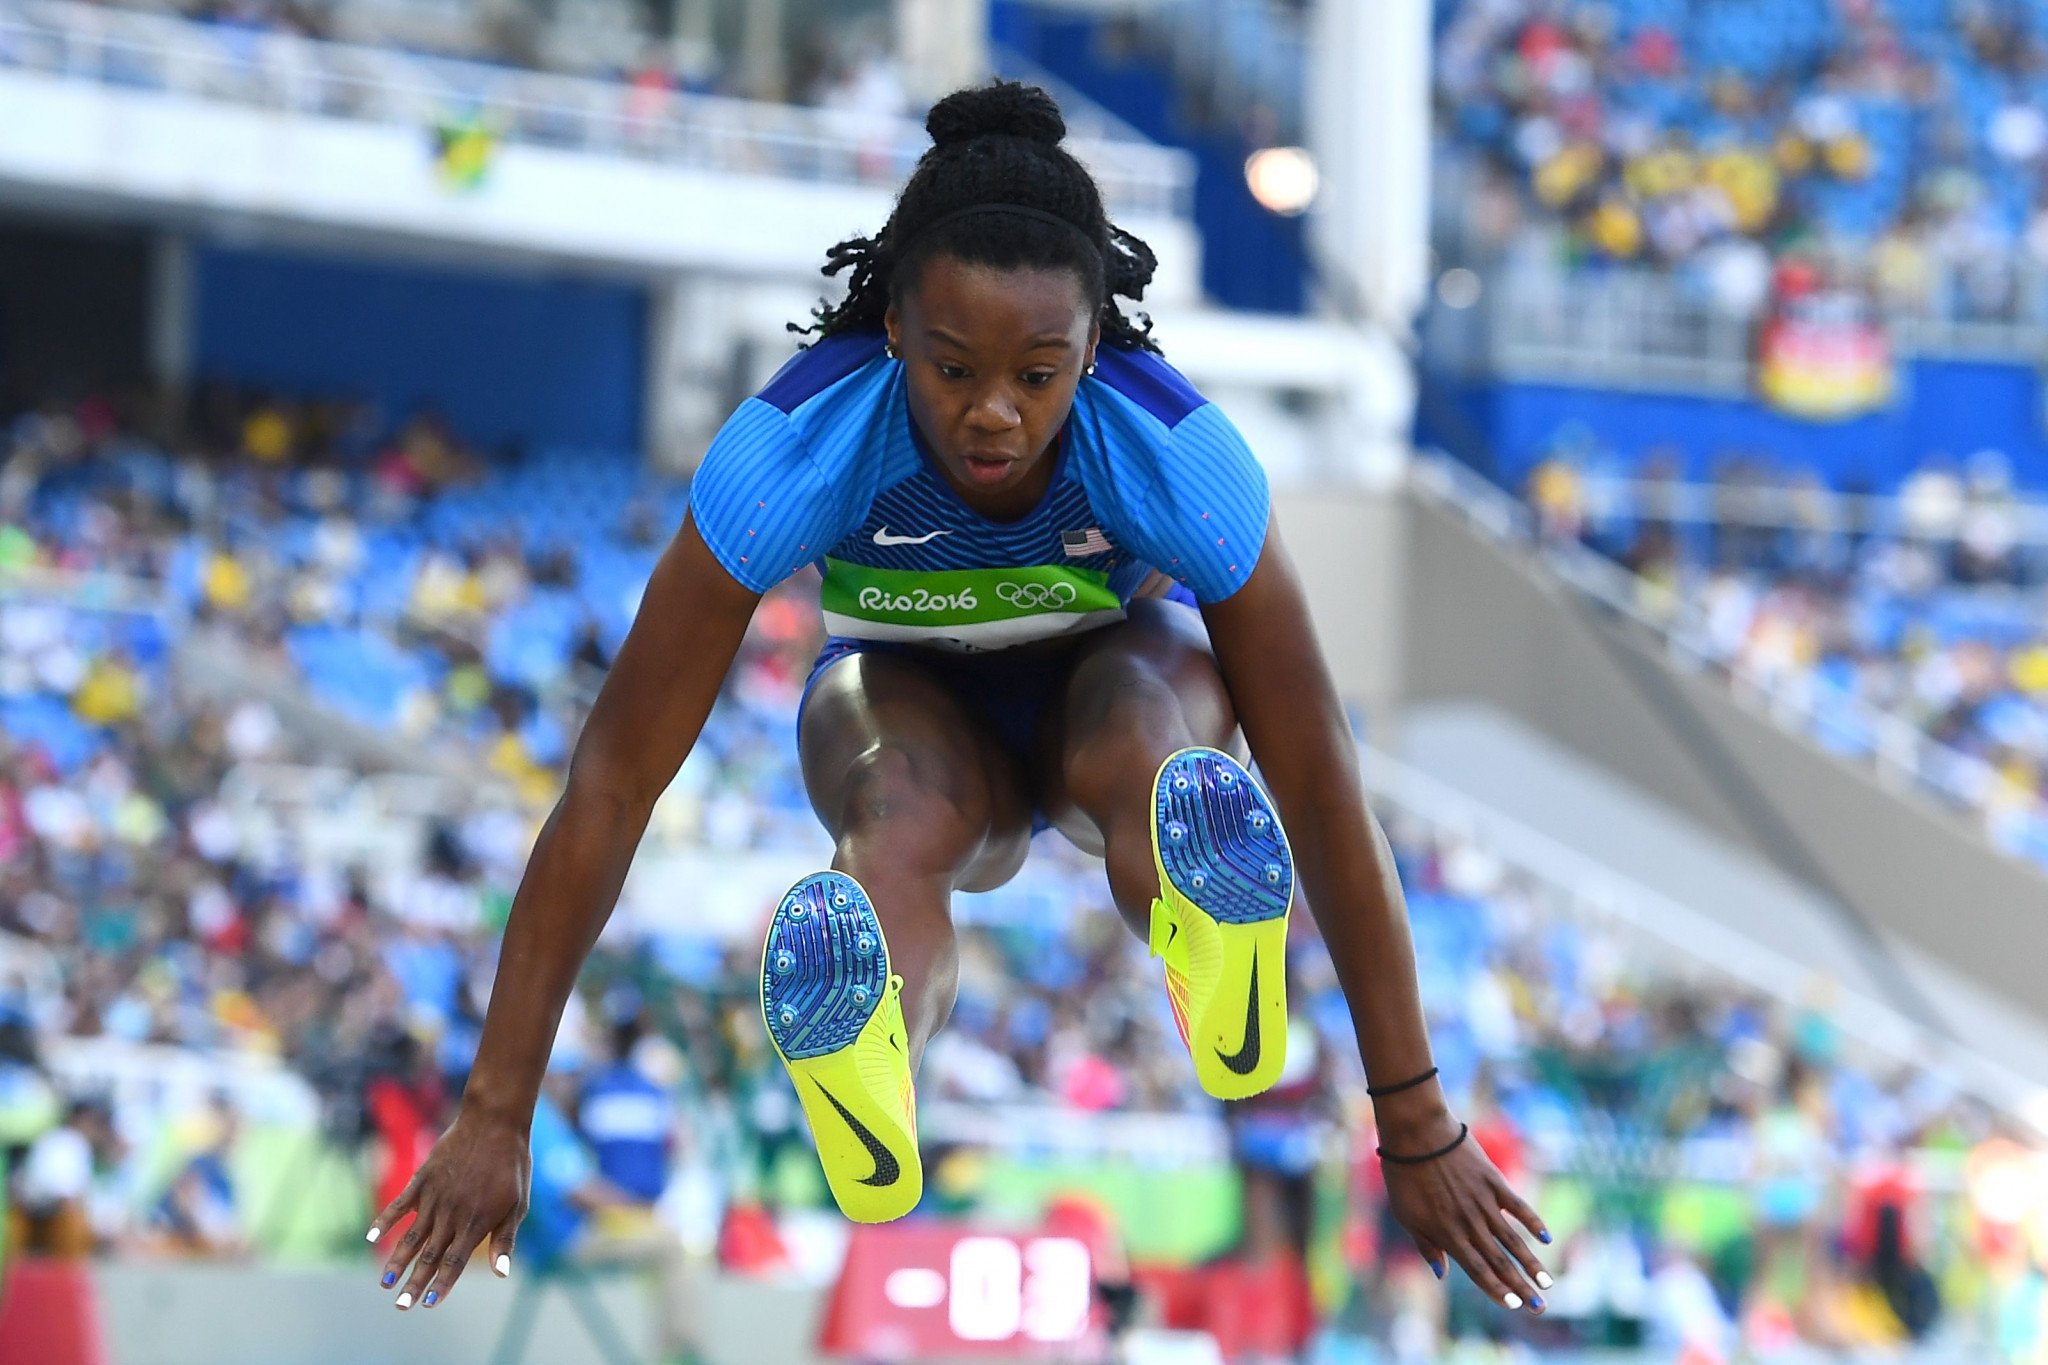 Keturah Orji, who has been nominated for the 2018 National Collegiate Athletic Association Woman of the Year award, competing in the 2016 Rio Olympics ©Getty Images